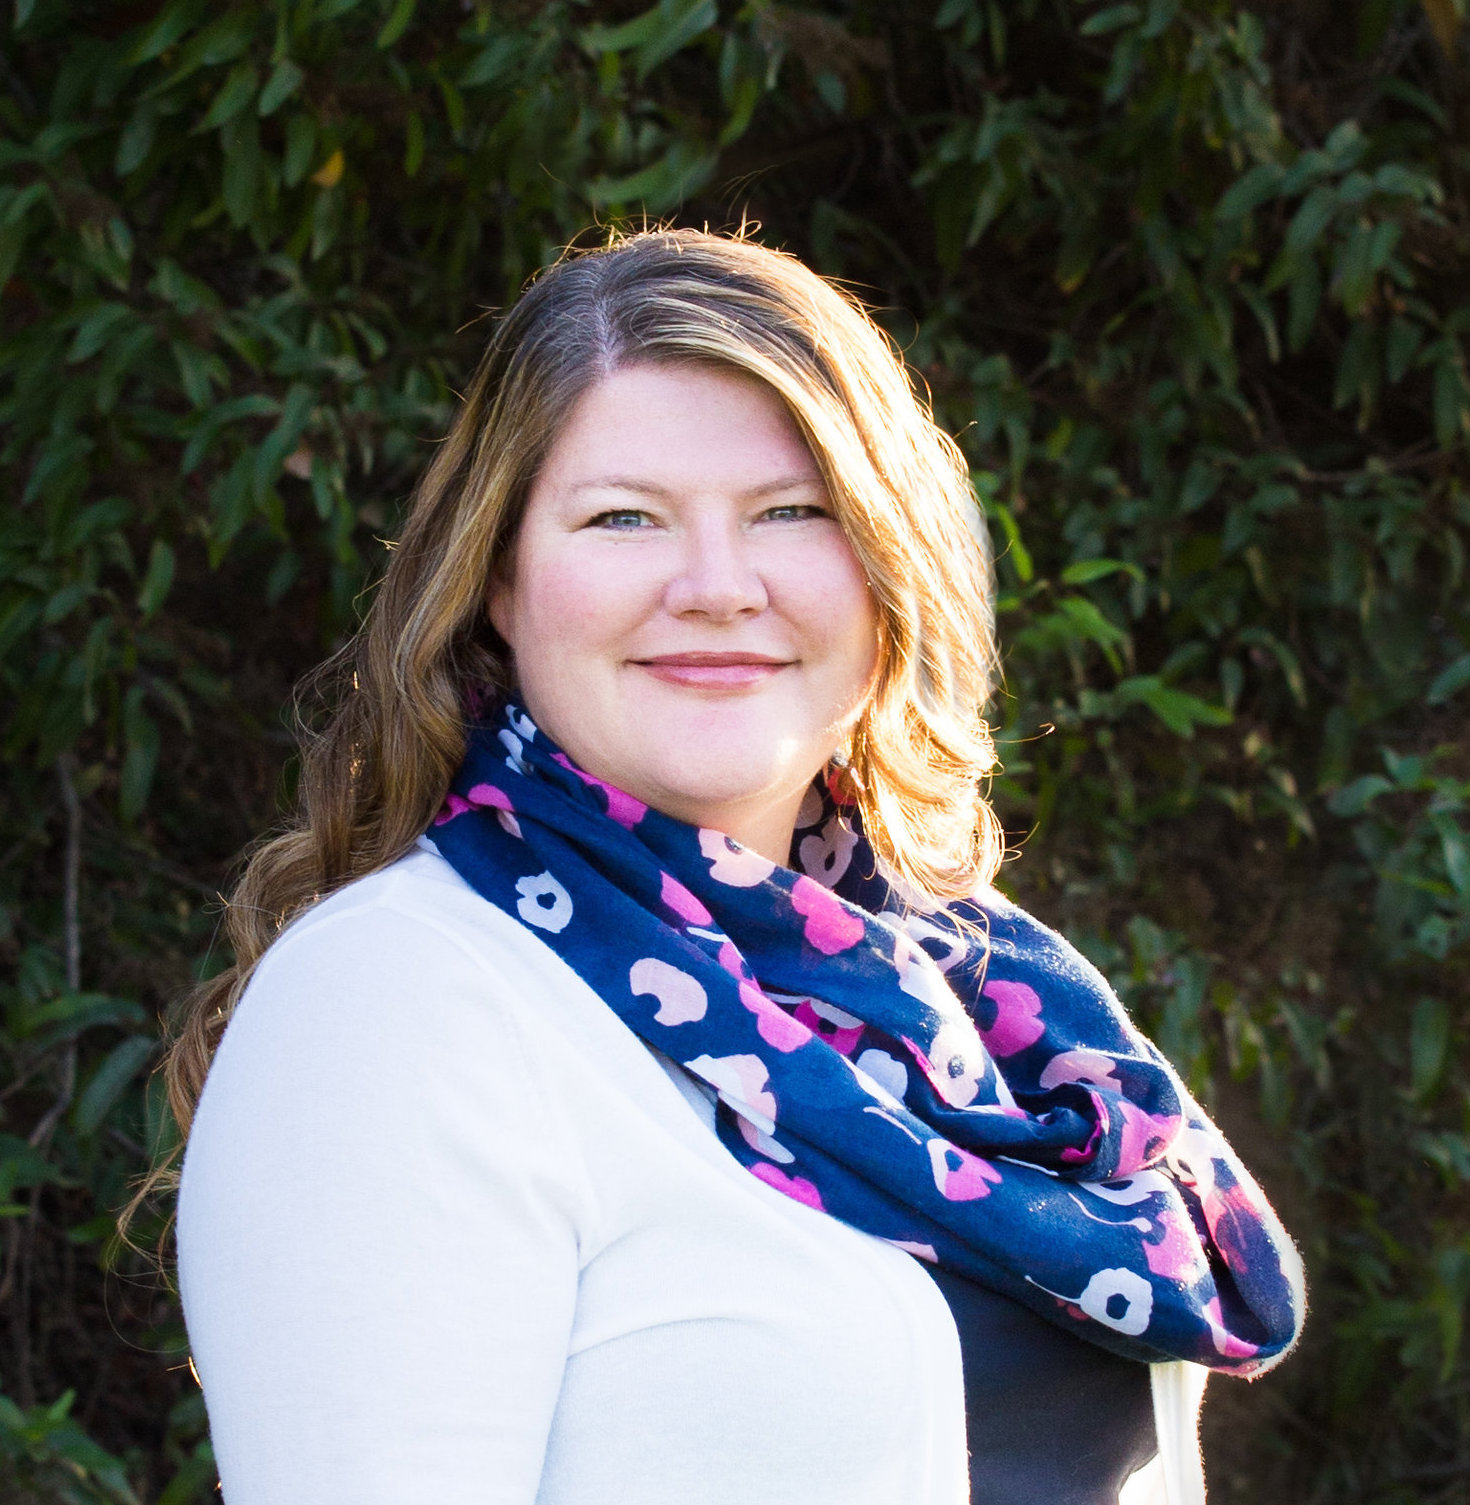 Official photo of Councilmember Tasha Boerner Horvath, Candidate for State Assembly.